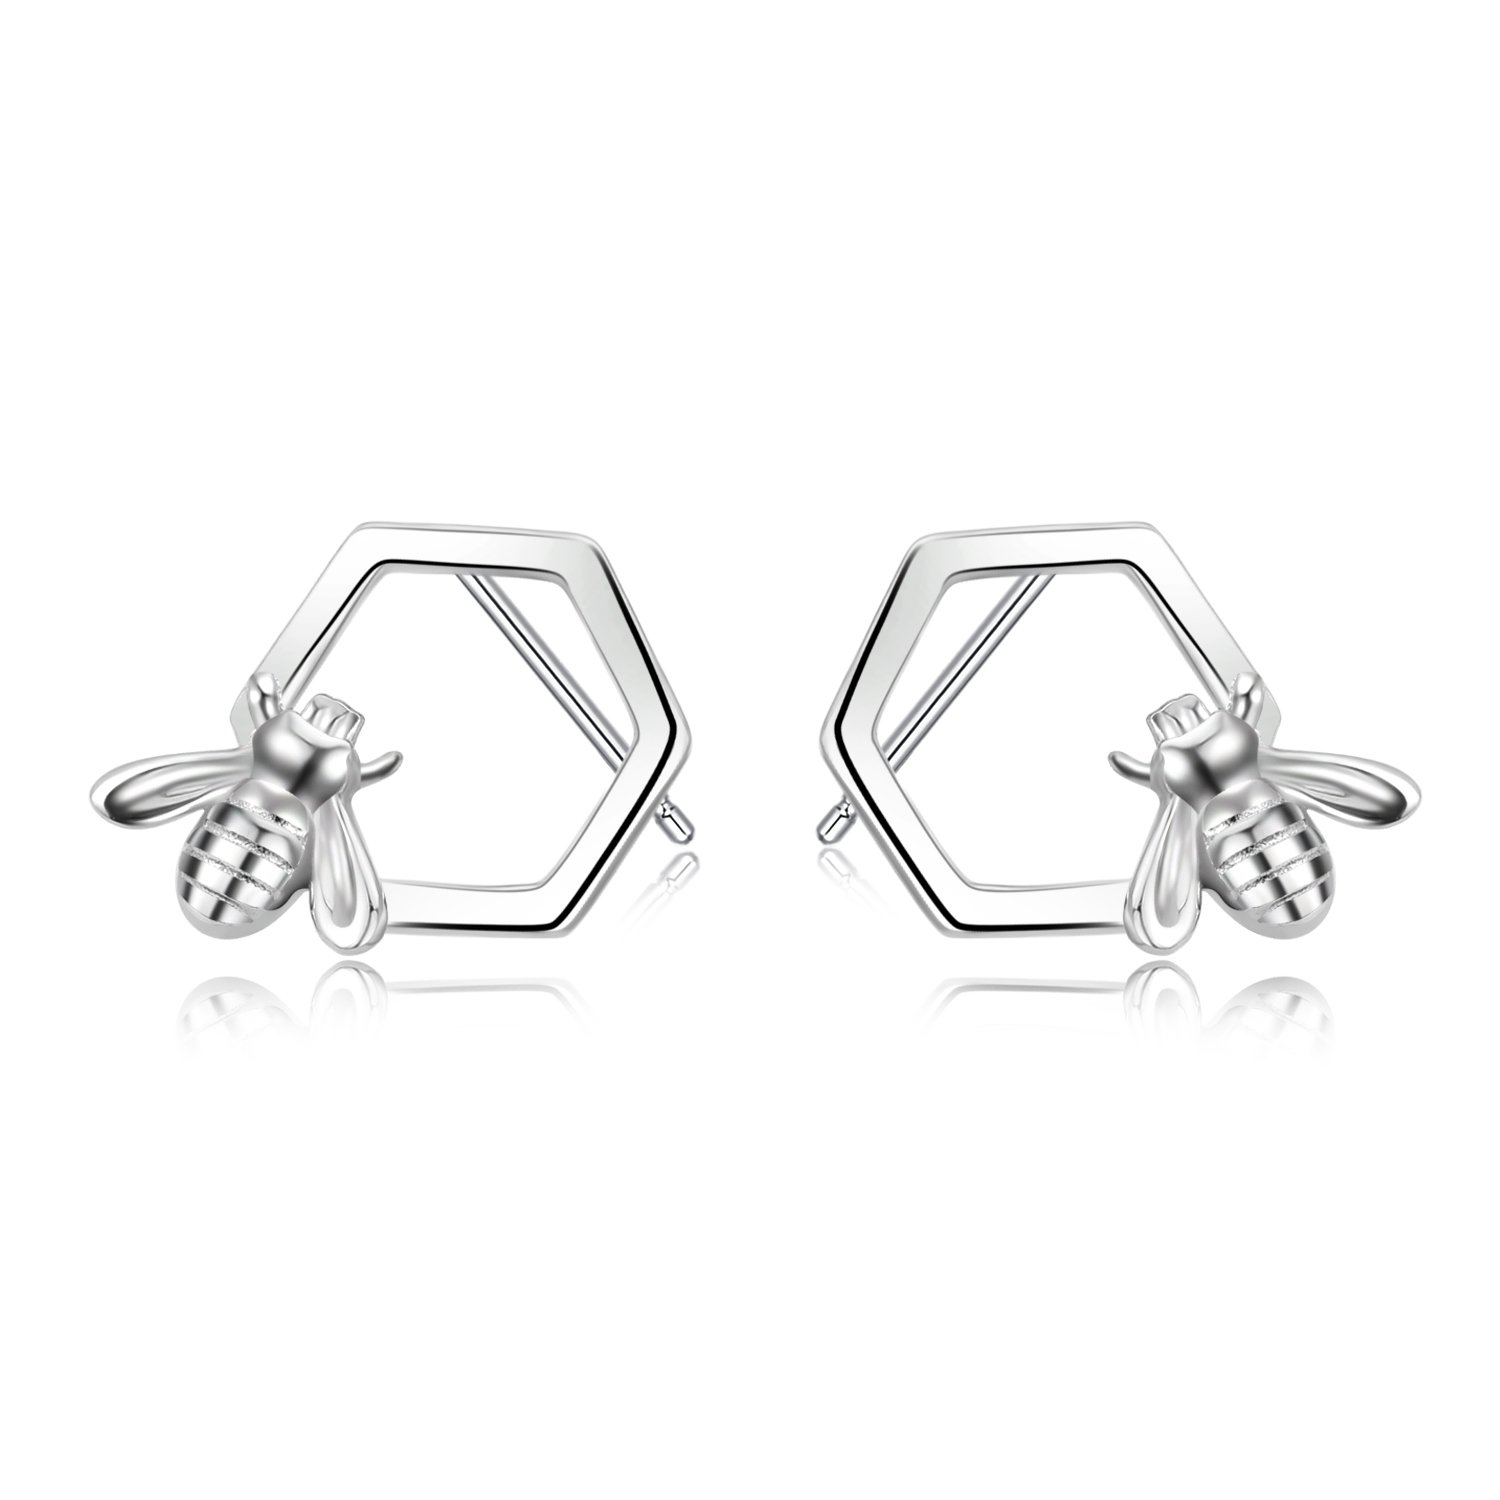 e660e5350 Amazon.com: LUHE Honeycomb and Honey Bee Earrings Hypoallergenic Cute Sterling  Silver Stud Earrings for Women Teen Girls: Jewelry